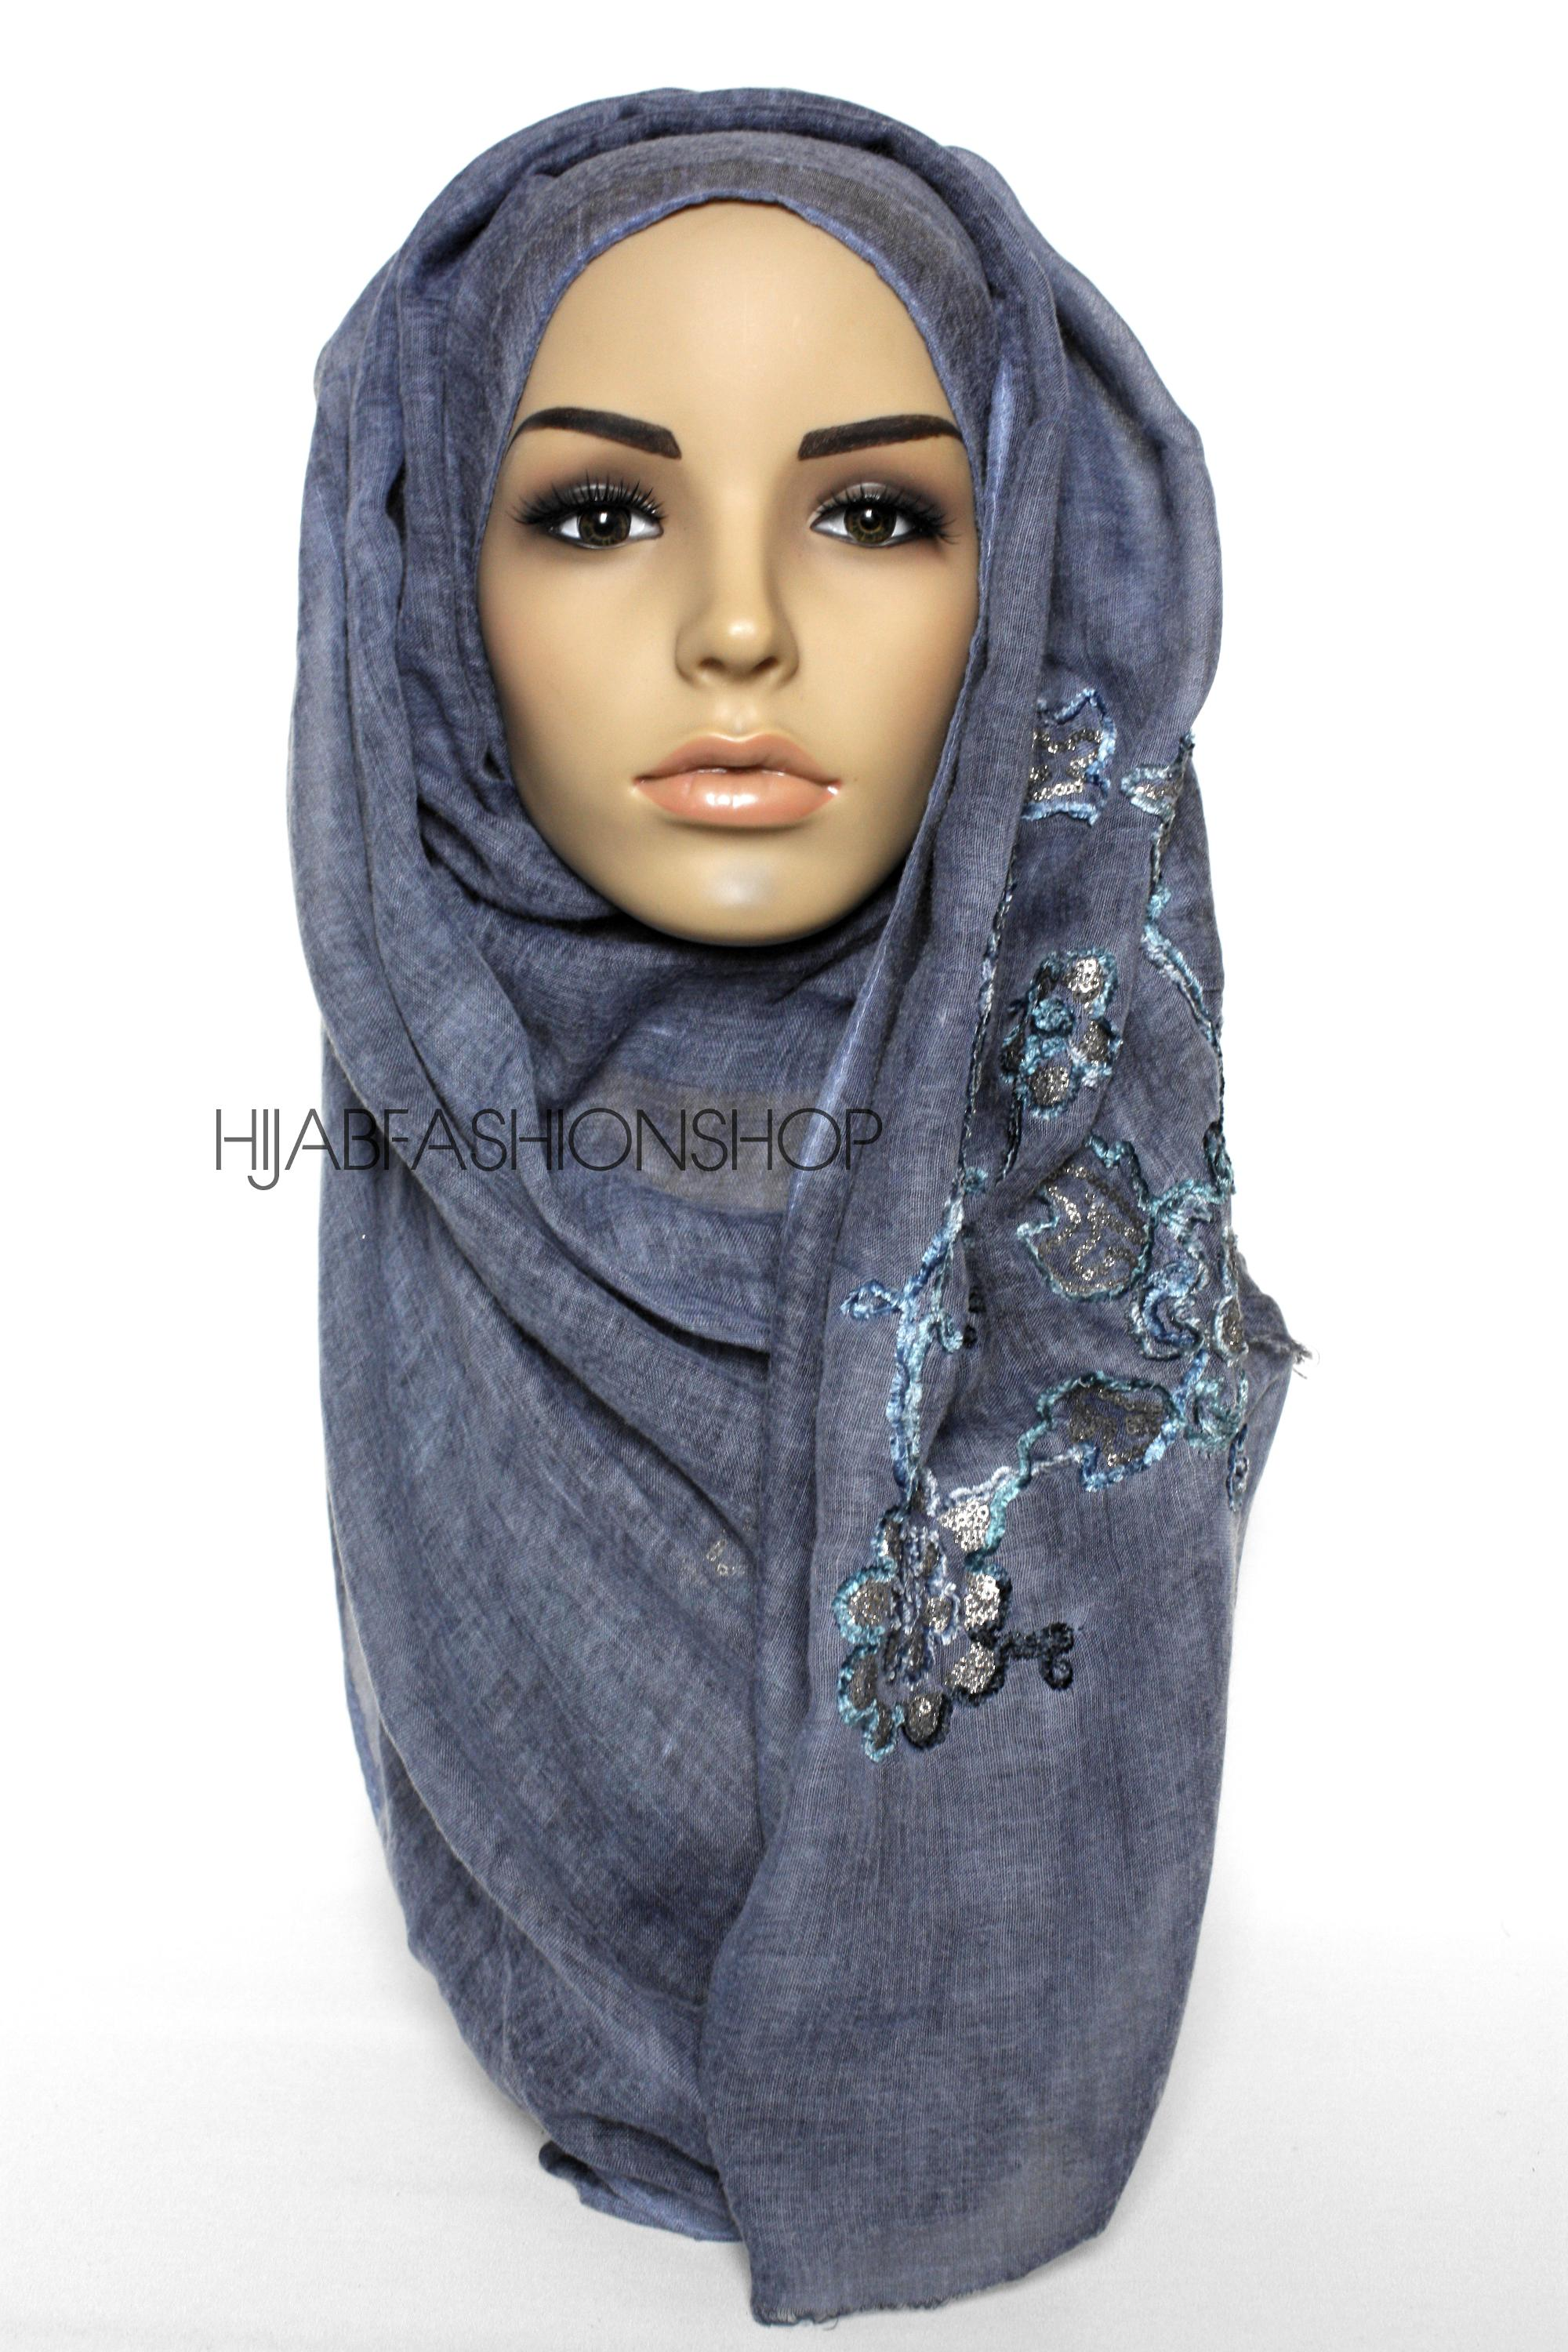 denim linen look hijab with floral velvet embroidery and sequins